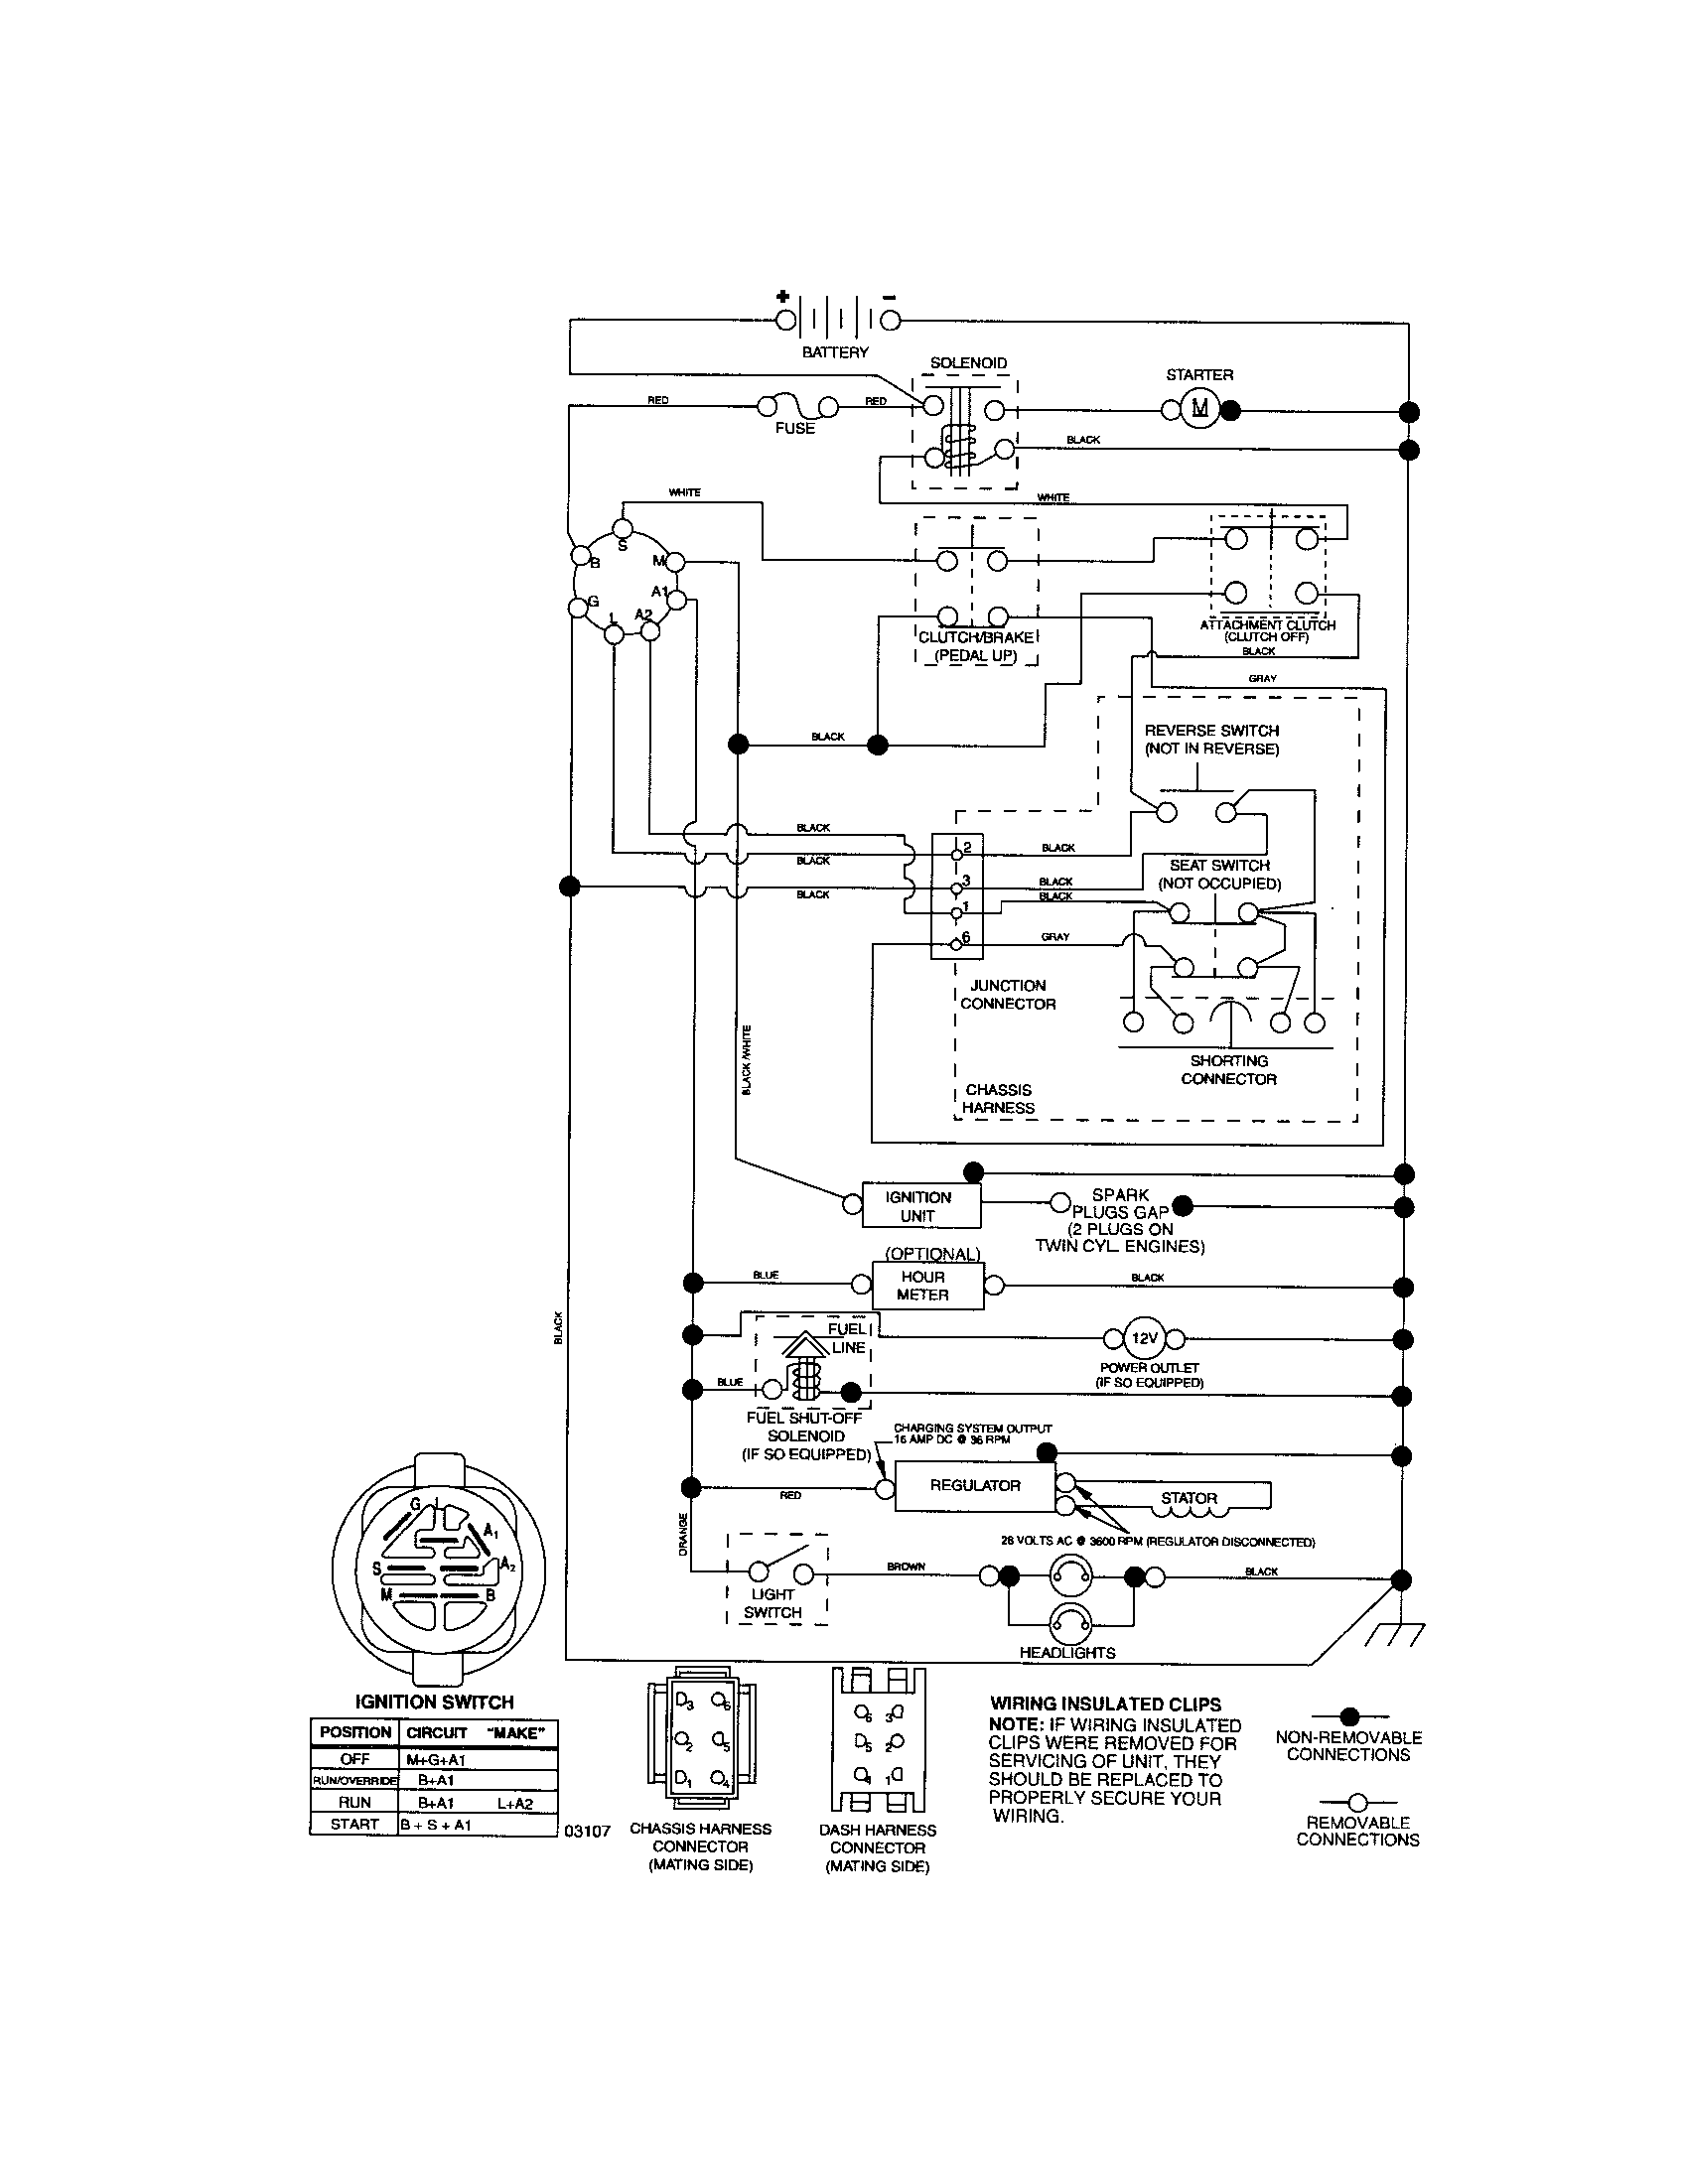 6af5f1447fd13c8443376822ddc1e105 craftsman riding mower electrical diagram wiring diagram toro riding mower wiring diagrams at gsmportal.co